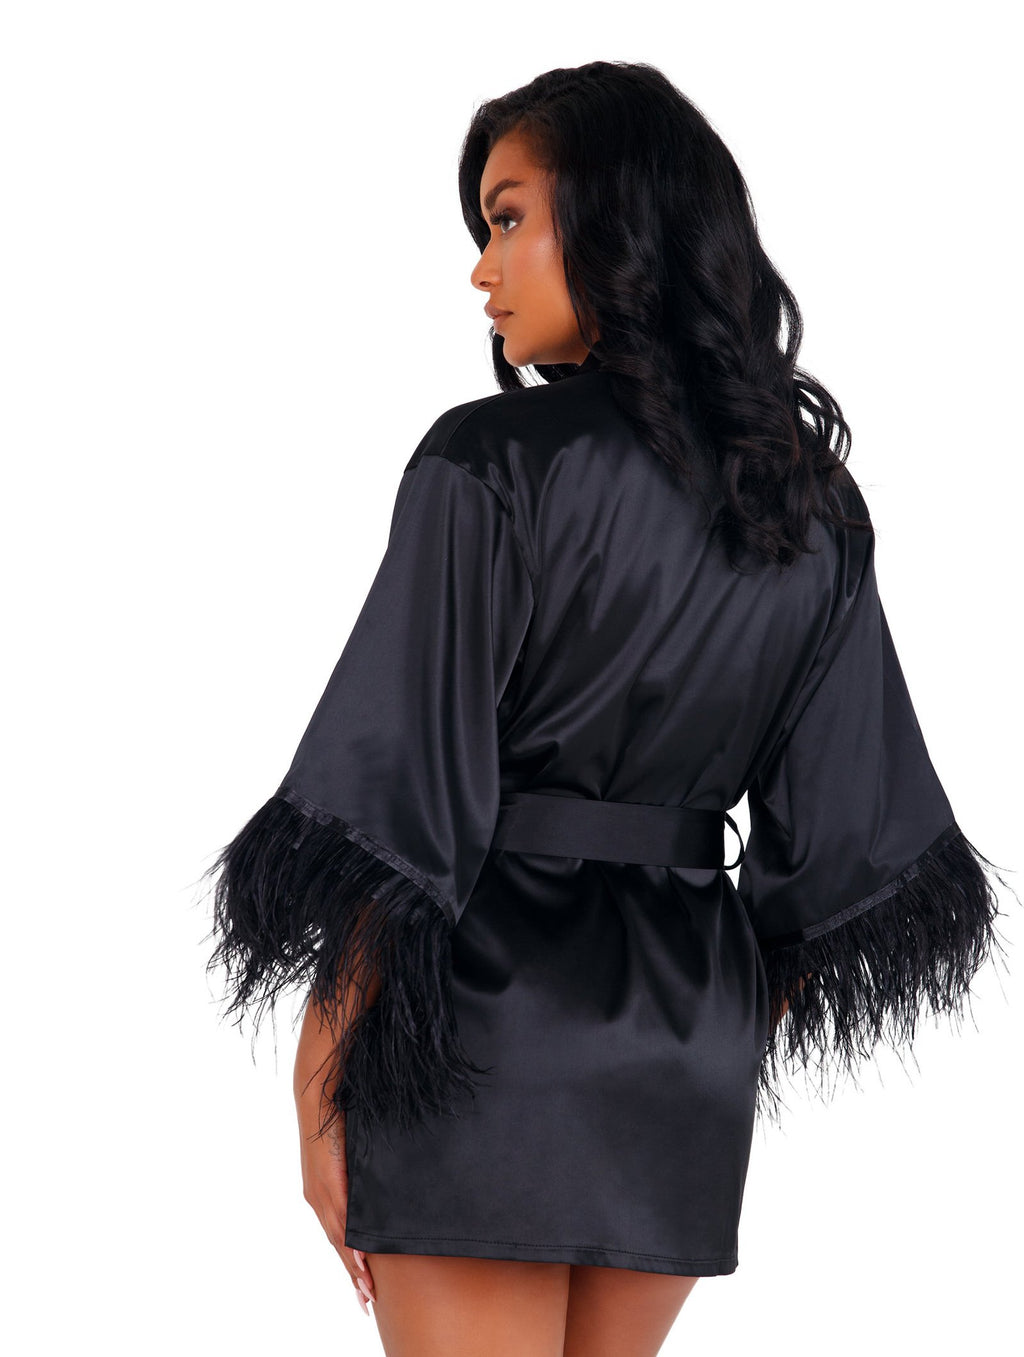 Roma Confidential LI399 - Soft Satin Robe with Ostrich Feathered Trim-Loungewear/Sleepwear-Roma-Unspoken Fashion